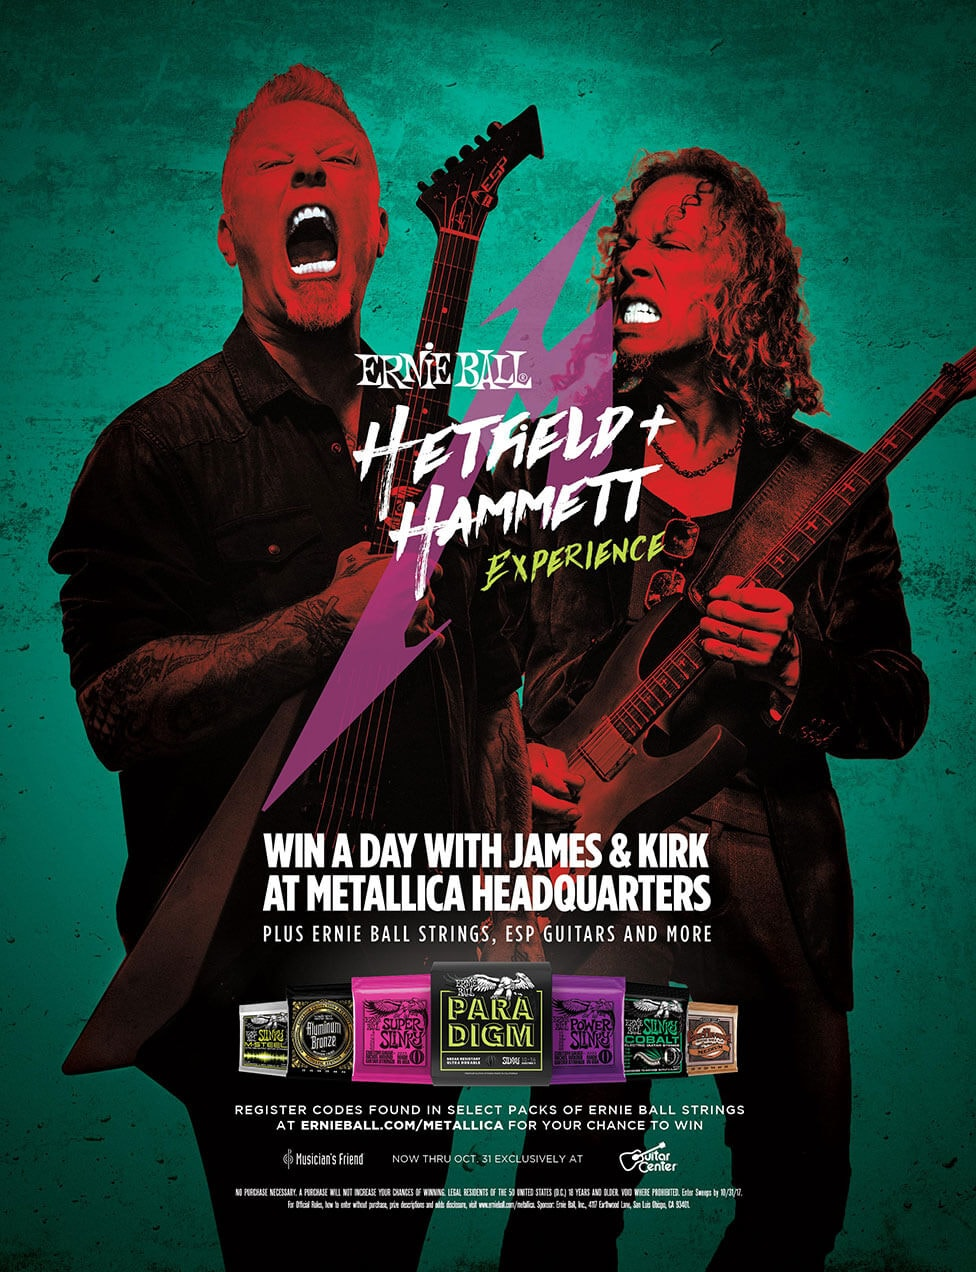 Ernie Ball Hetfield plus Hammett Experience win a day with James and Kirk at Metalica Headquarters